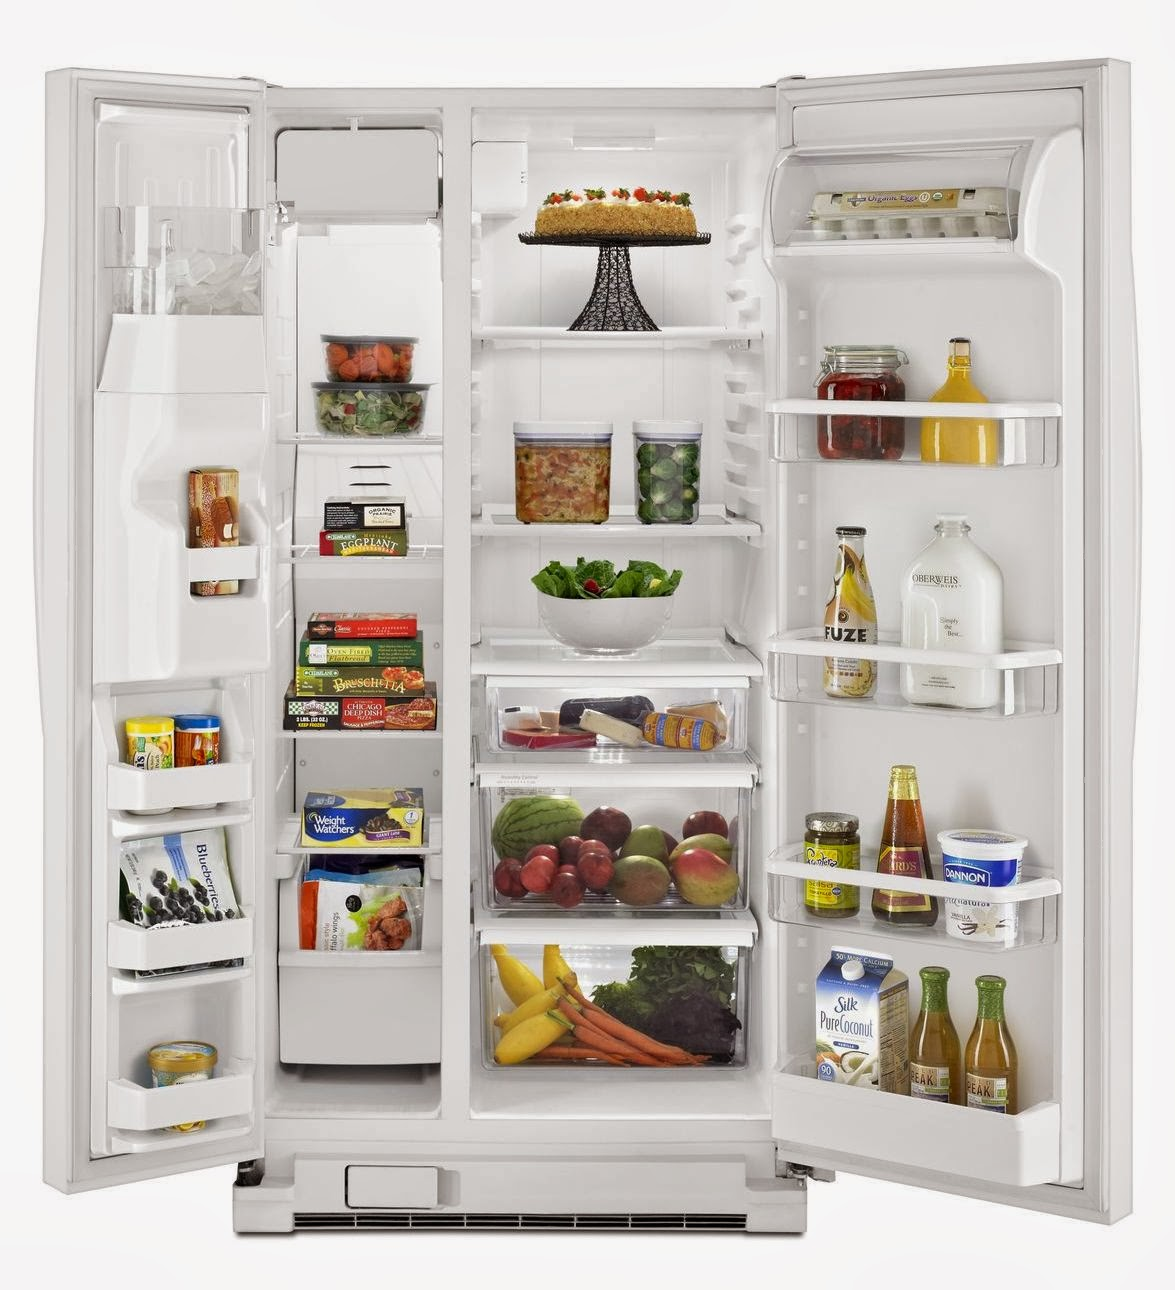 whirlpool refrigerator brand whirlpool 22 cf side by side. Black Bedroom Furniture Sets. Home Design Ideas